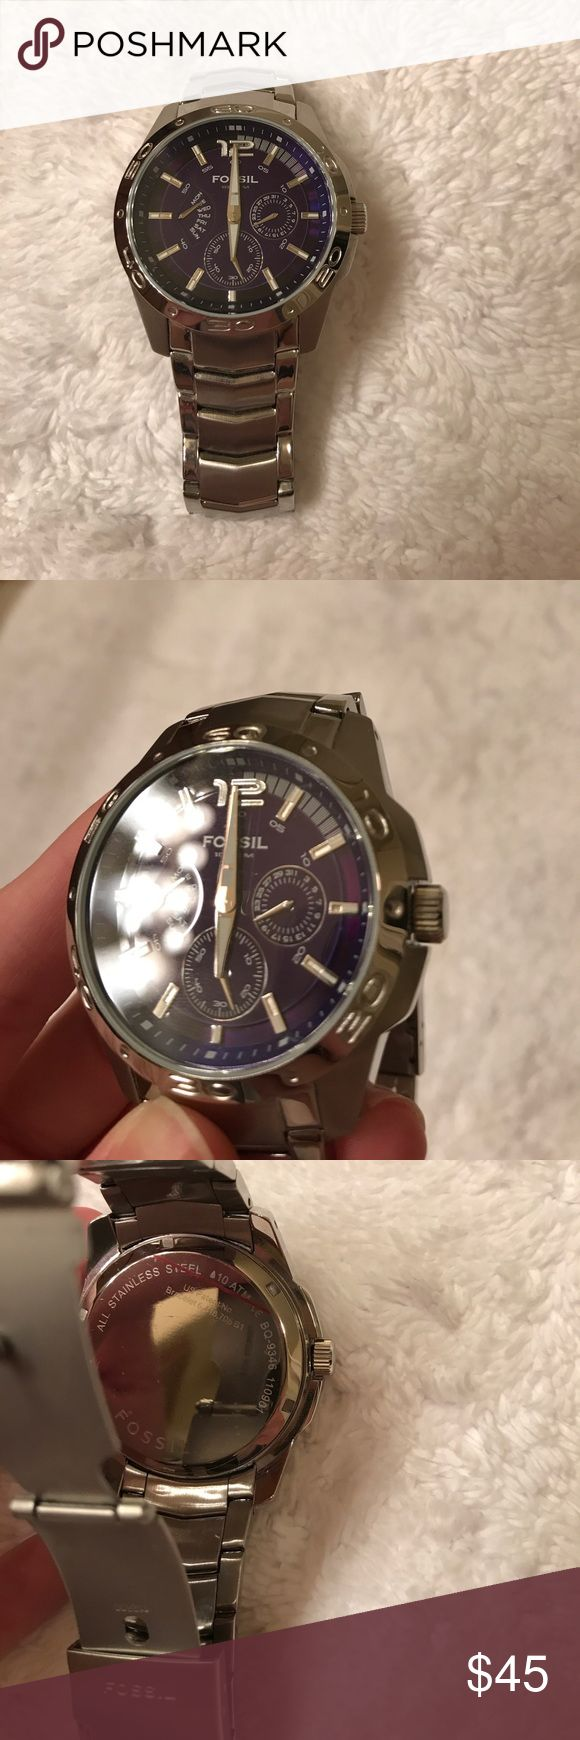 Men's fossil watch. Men's silver and blue face fossil watch. Battery does not work, really good condition with little to no wear at all. No additional links. No trades. Fossil Accessories Watches